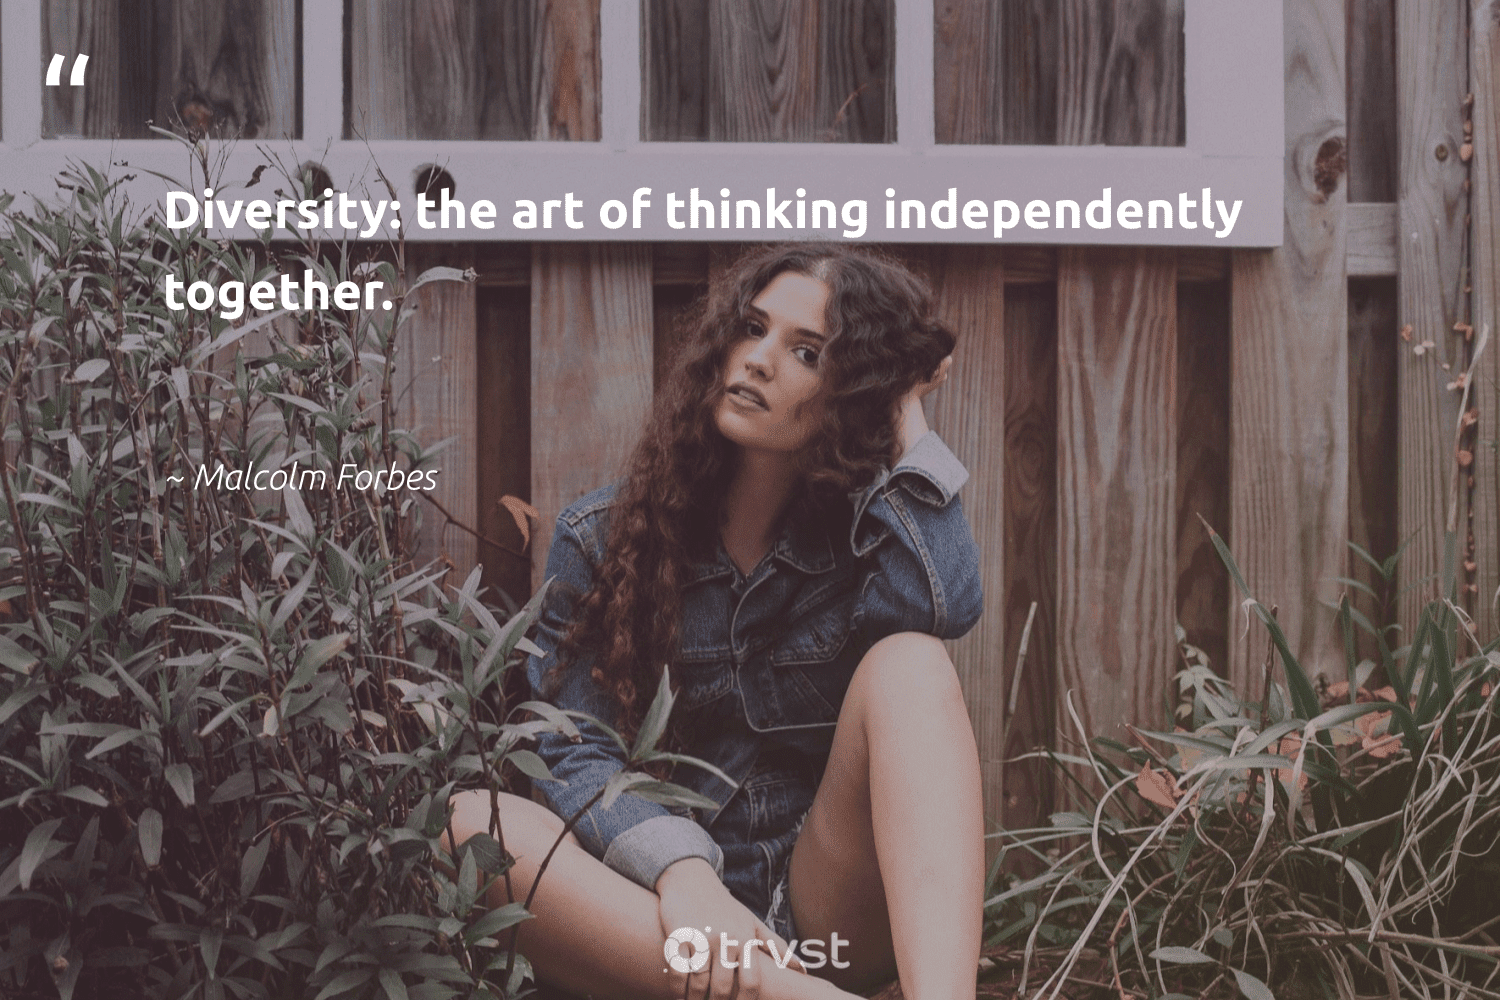 """""""Diversity: the art of thinking independently together.""""  - Malcolm Forbes #trvst #quotes #socialgood #thinkgreen #weareallone #dogood #giveback #socialimpact #bethechange #planetearthfirst #makeadifference #beinspired"""